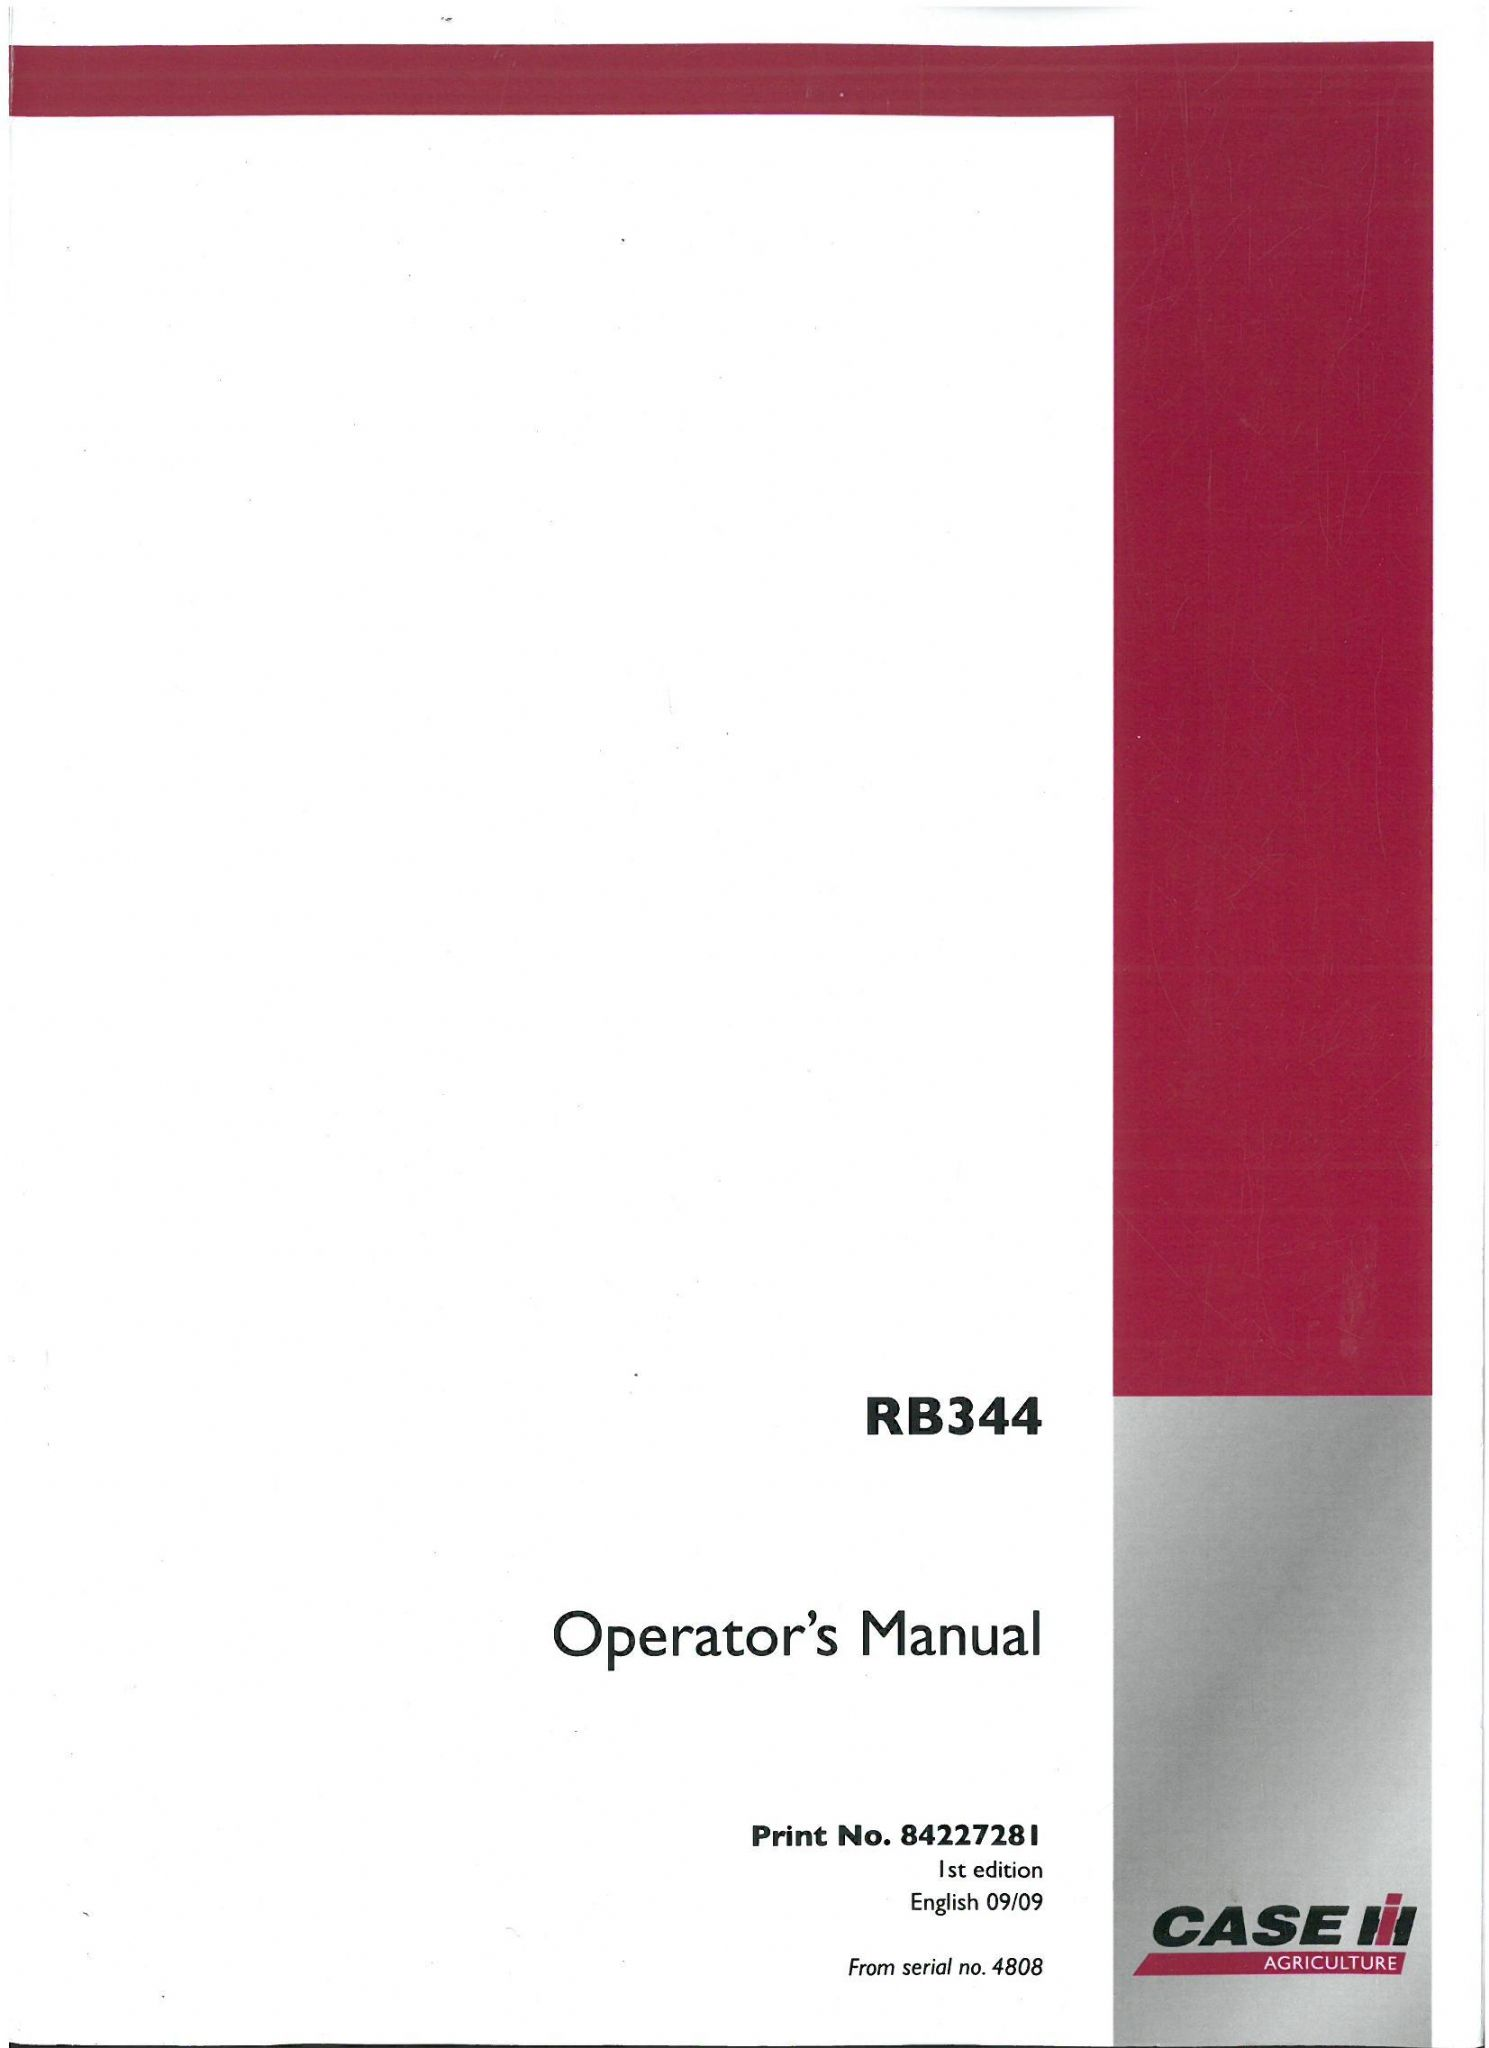 Case IH Round Baler RB344 Operators Manual - RB 344